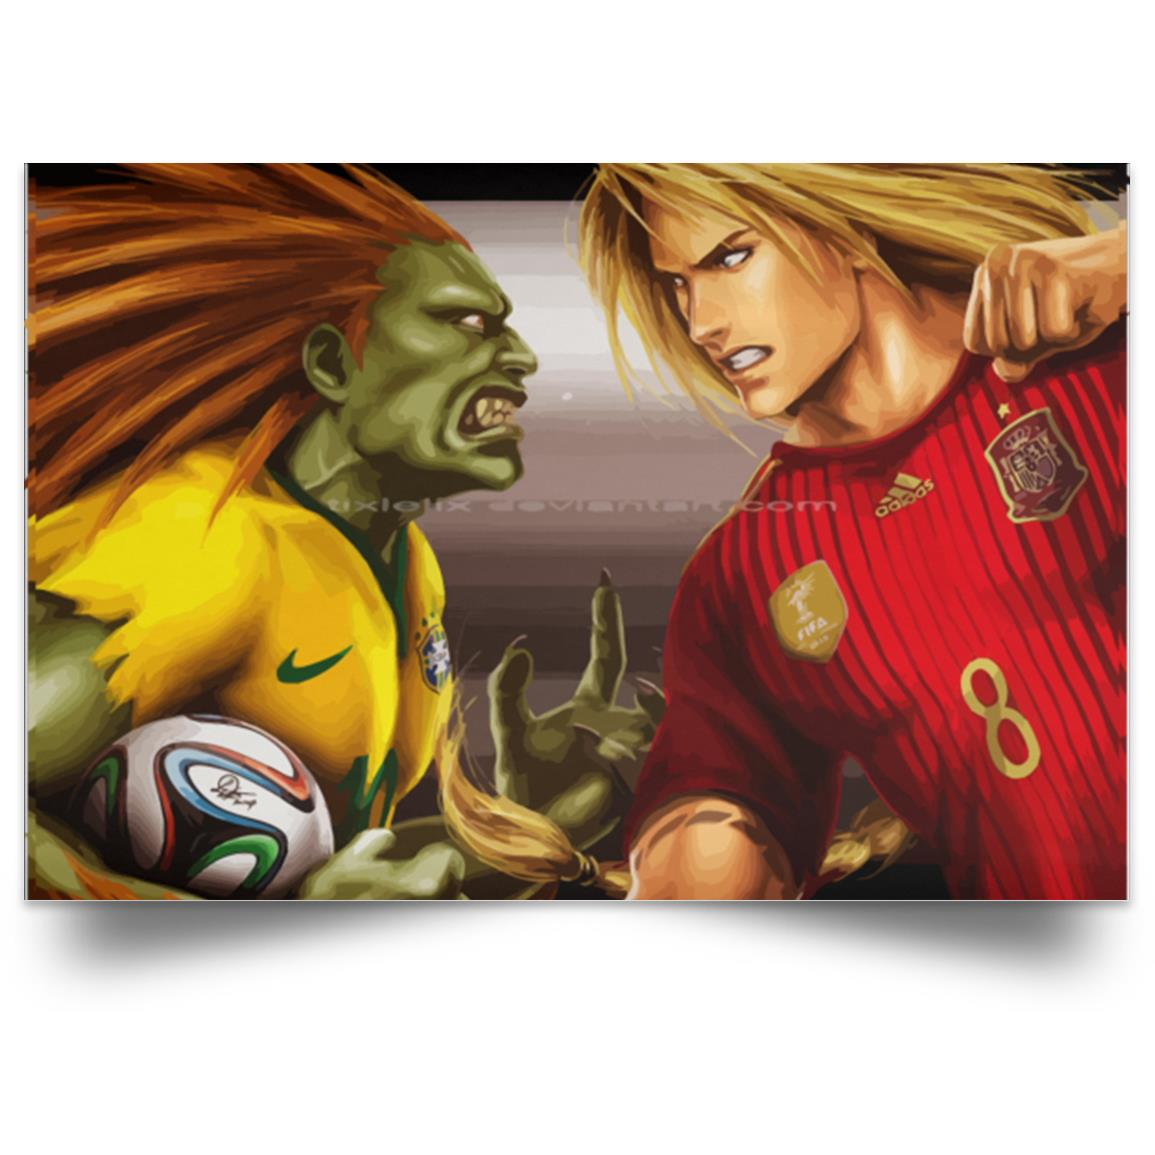 BLANKA VS KEN TEST FRANCAIS 1